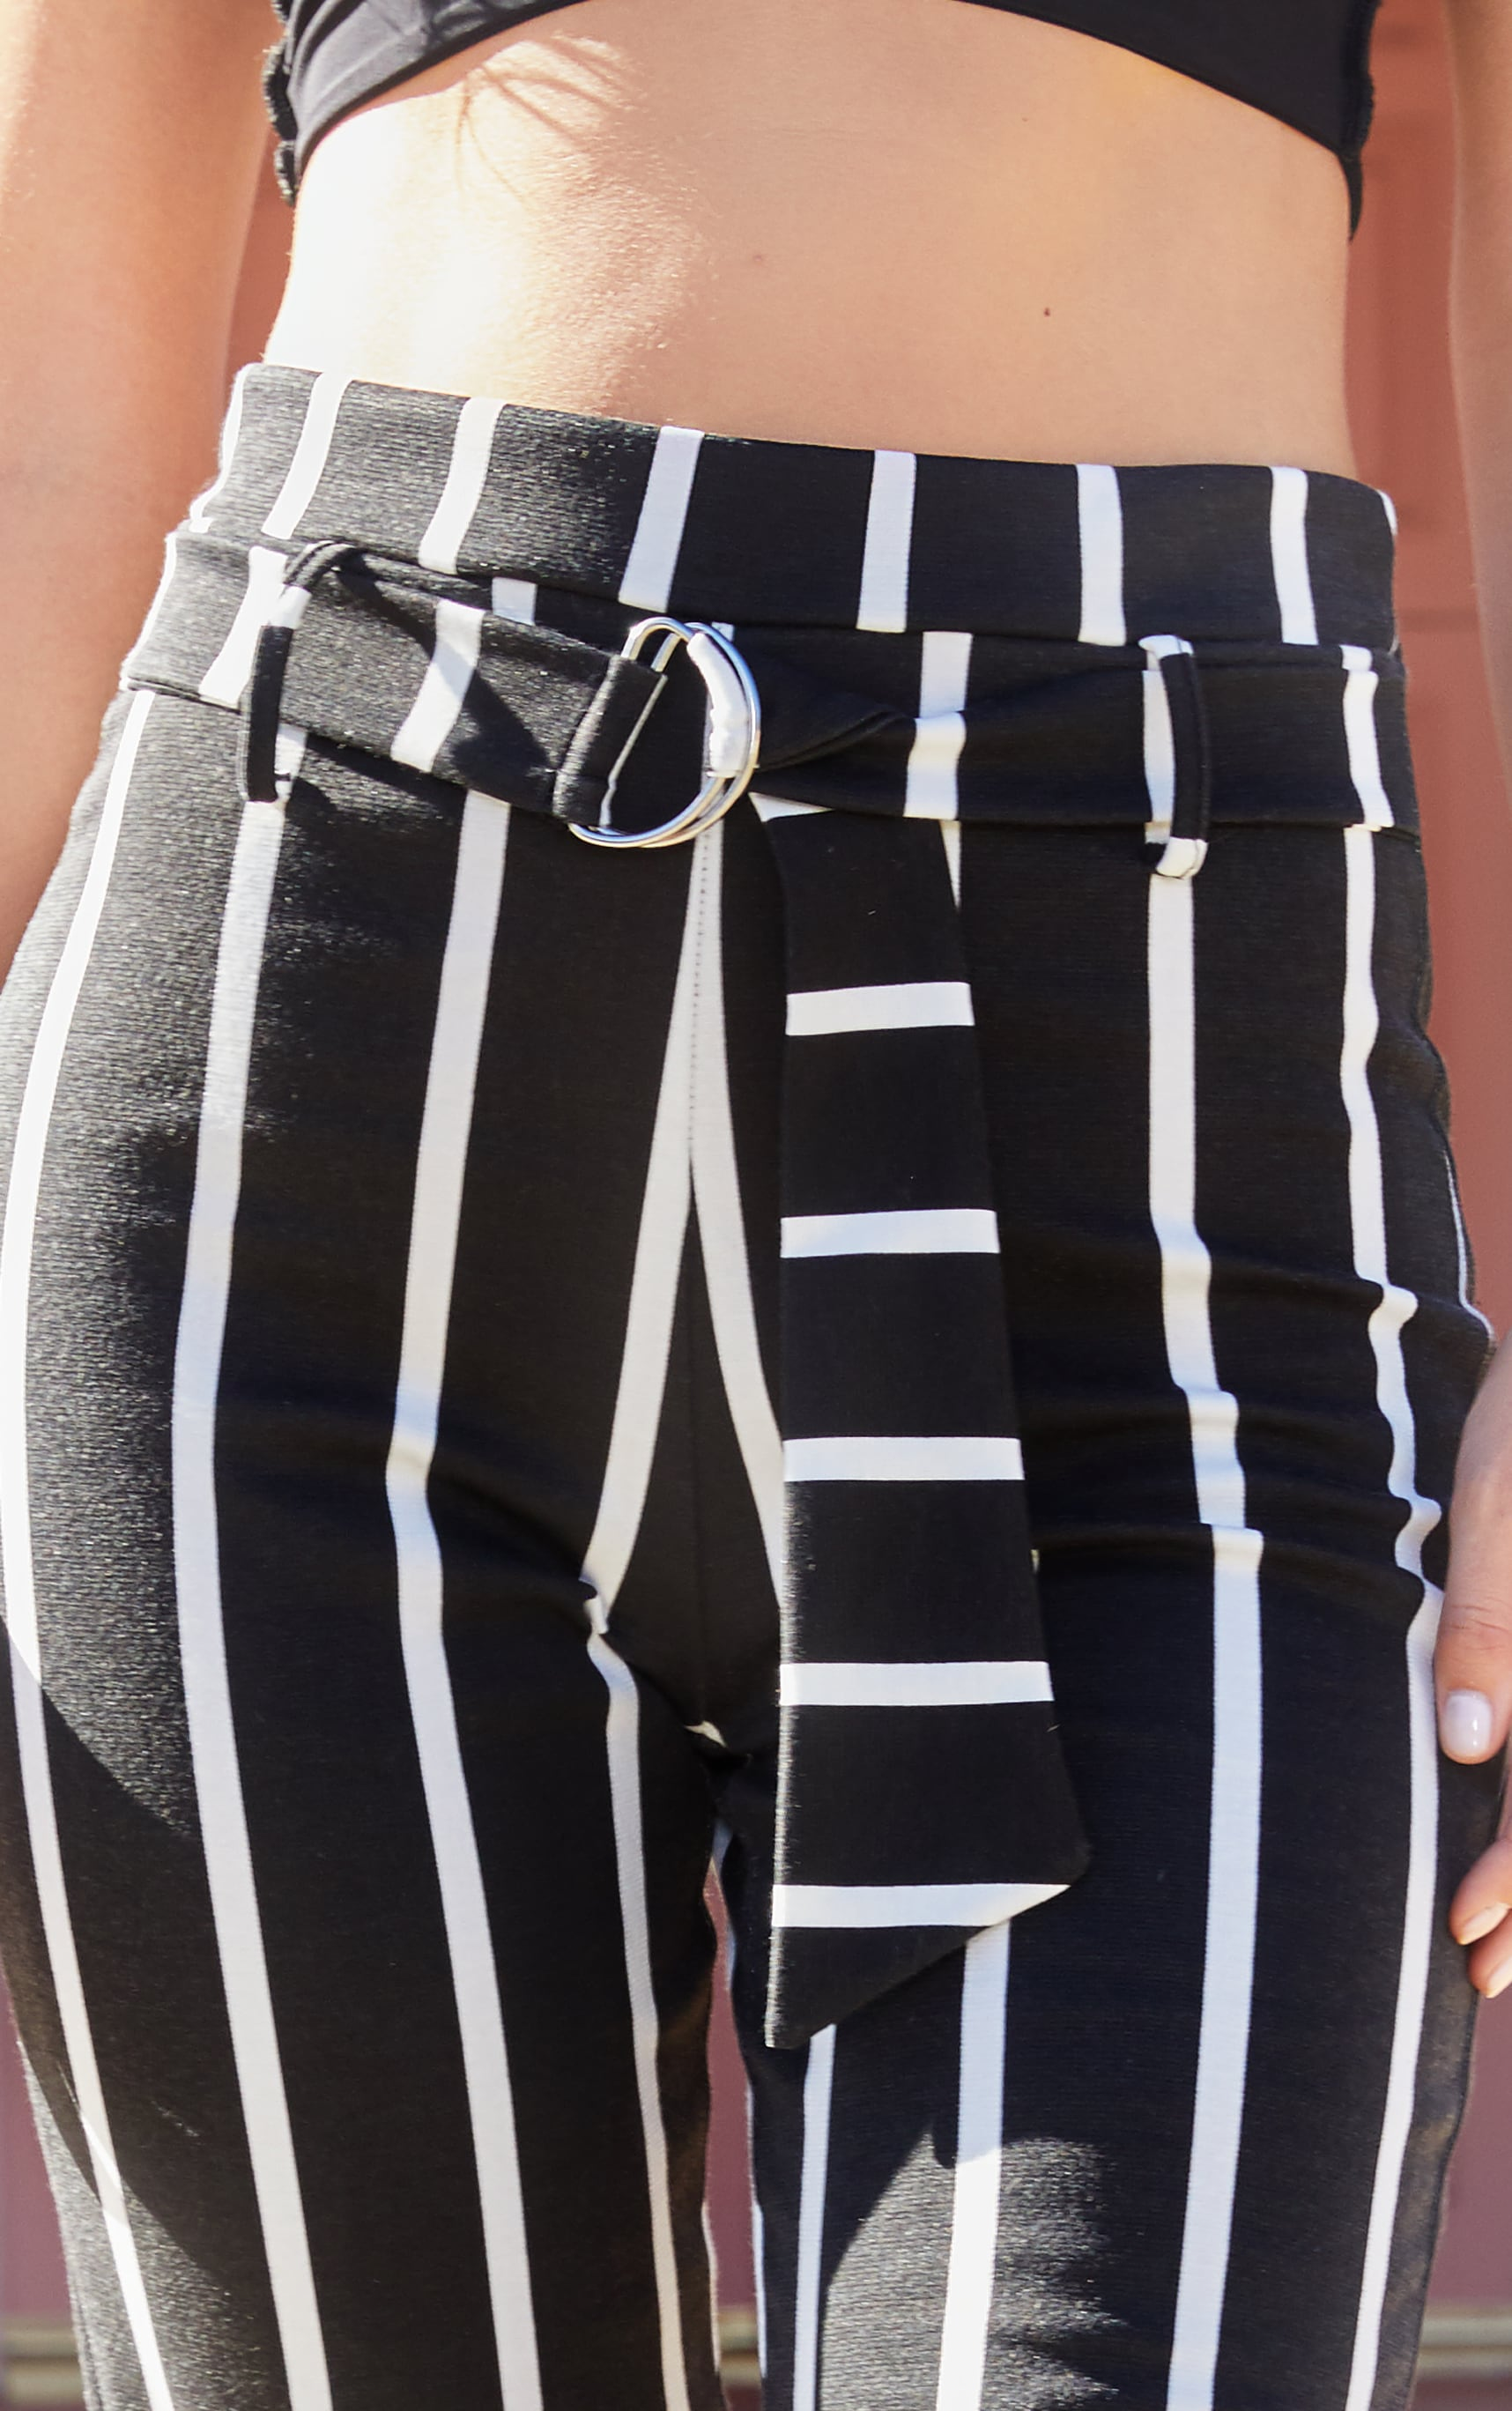 Black Monochrome Stripe Belted Cigarette Pants 5